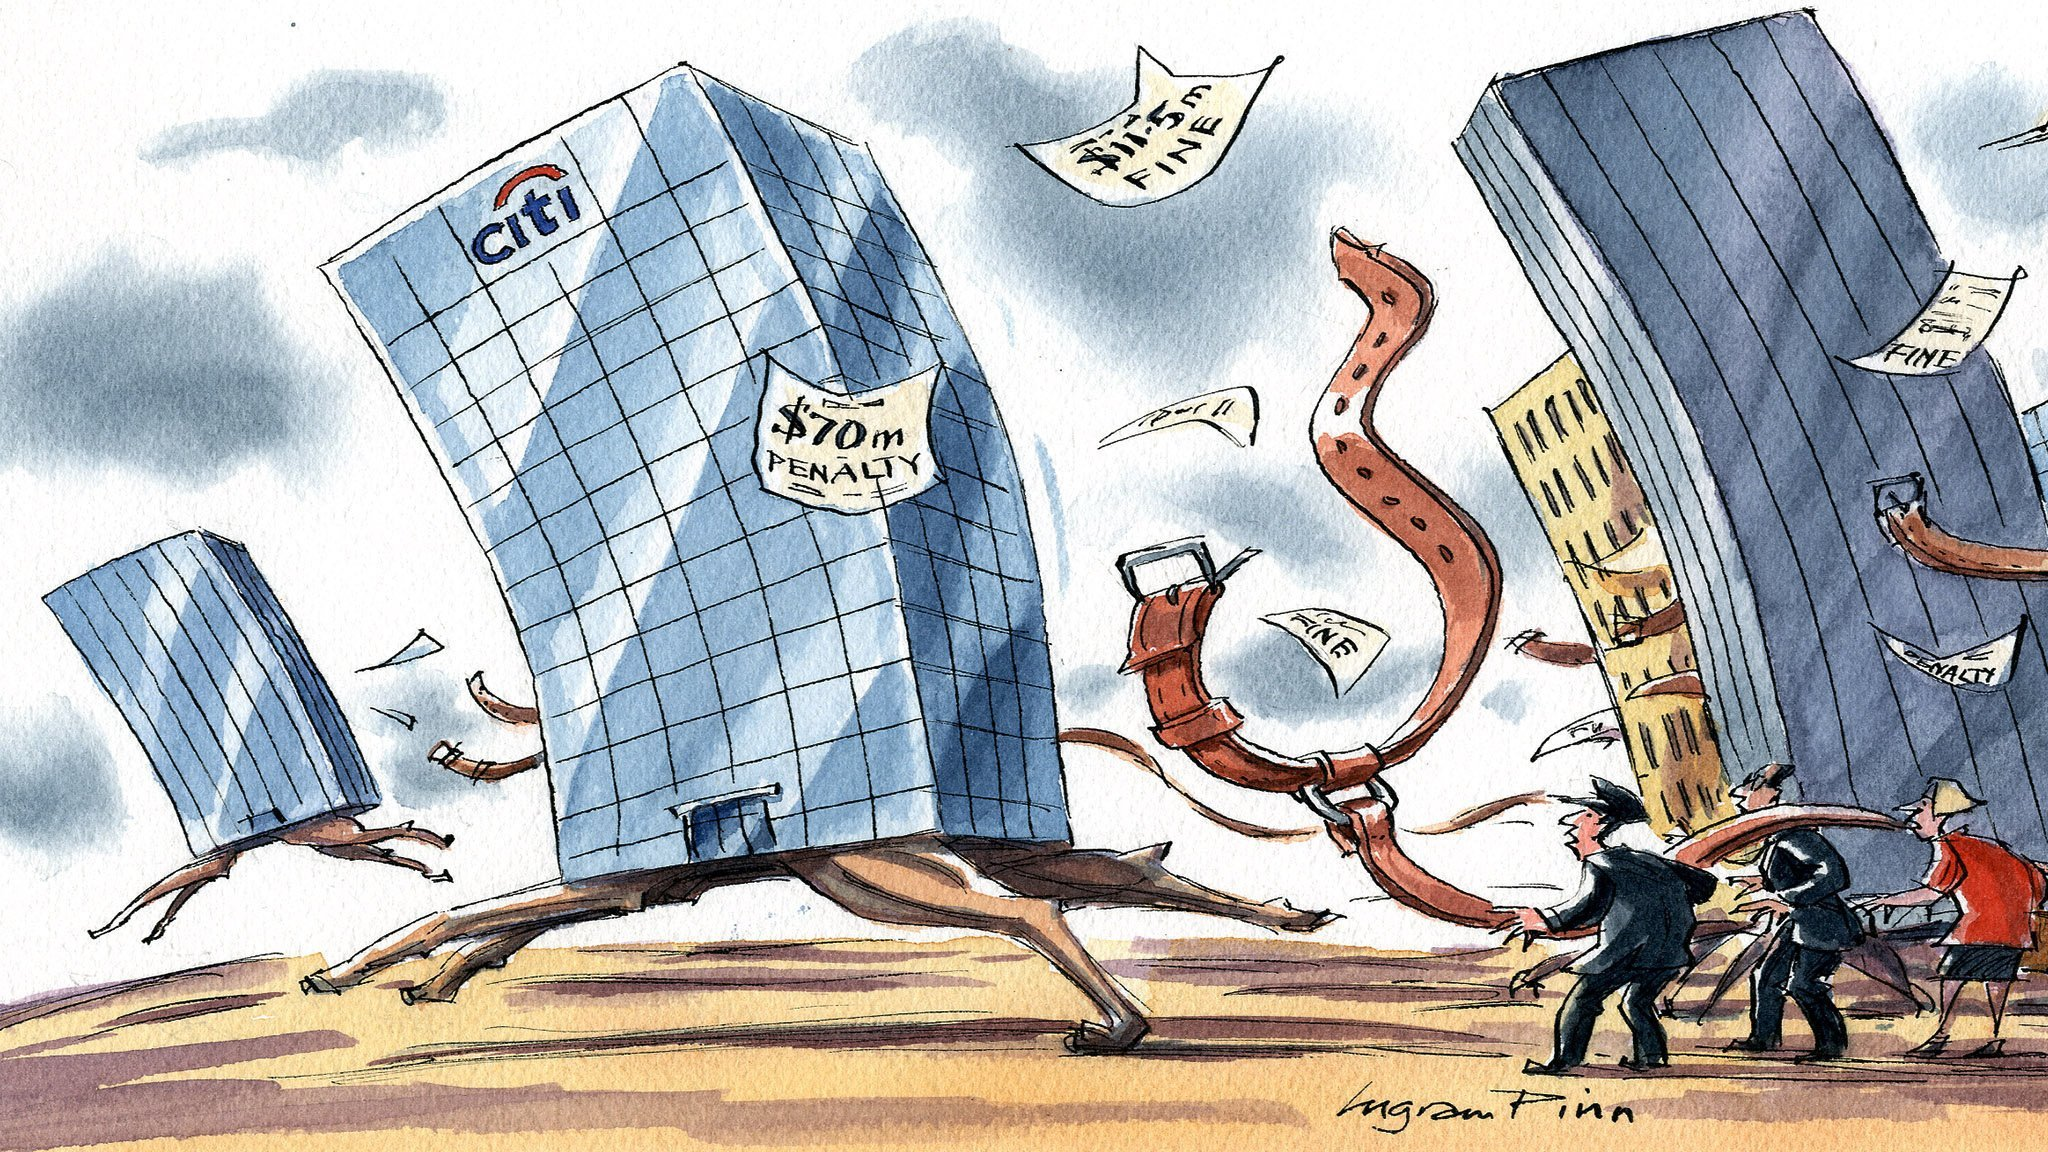 Citi's travails come at a critical time for the banking industry